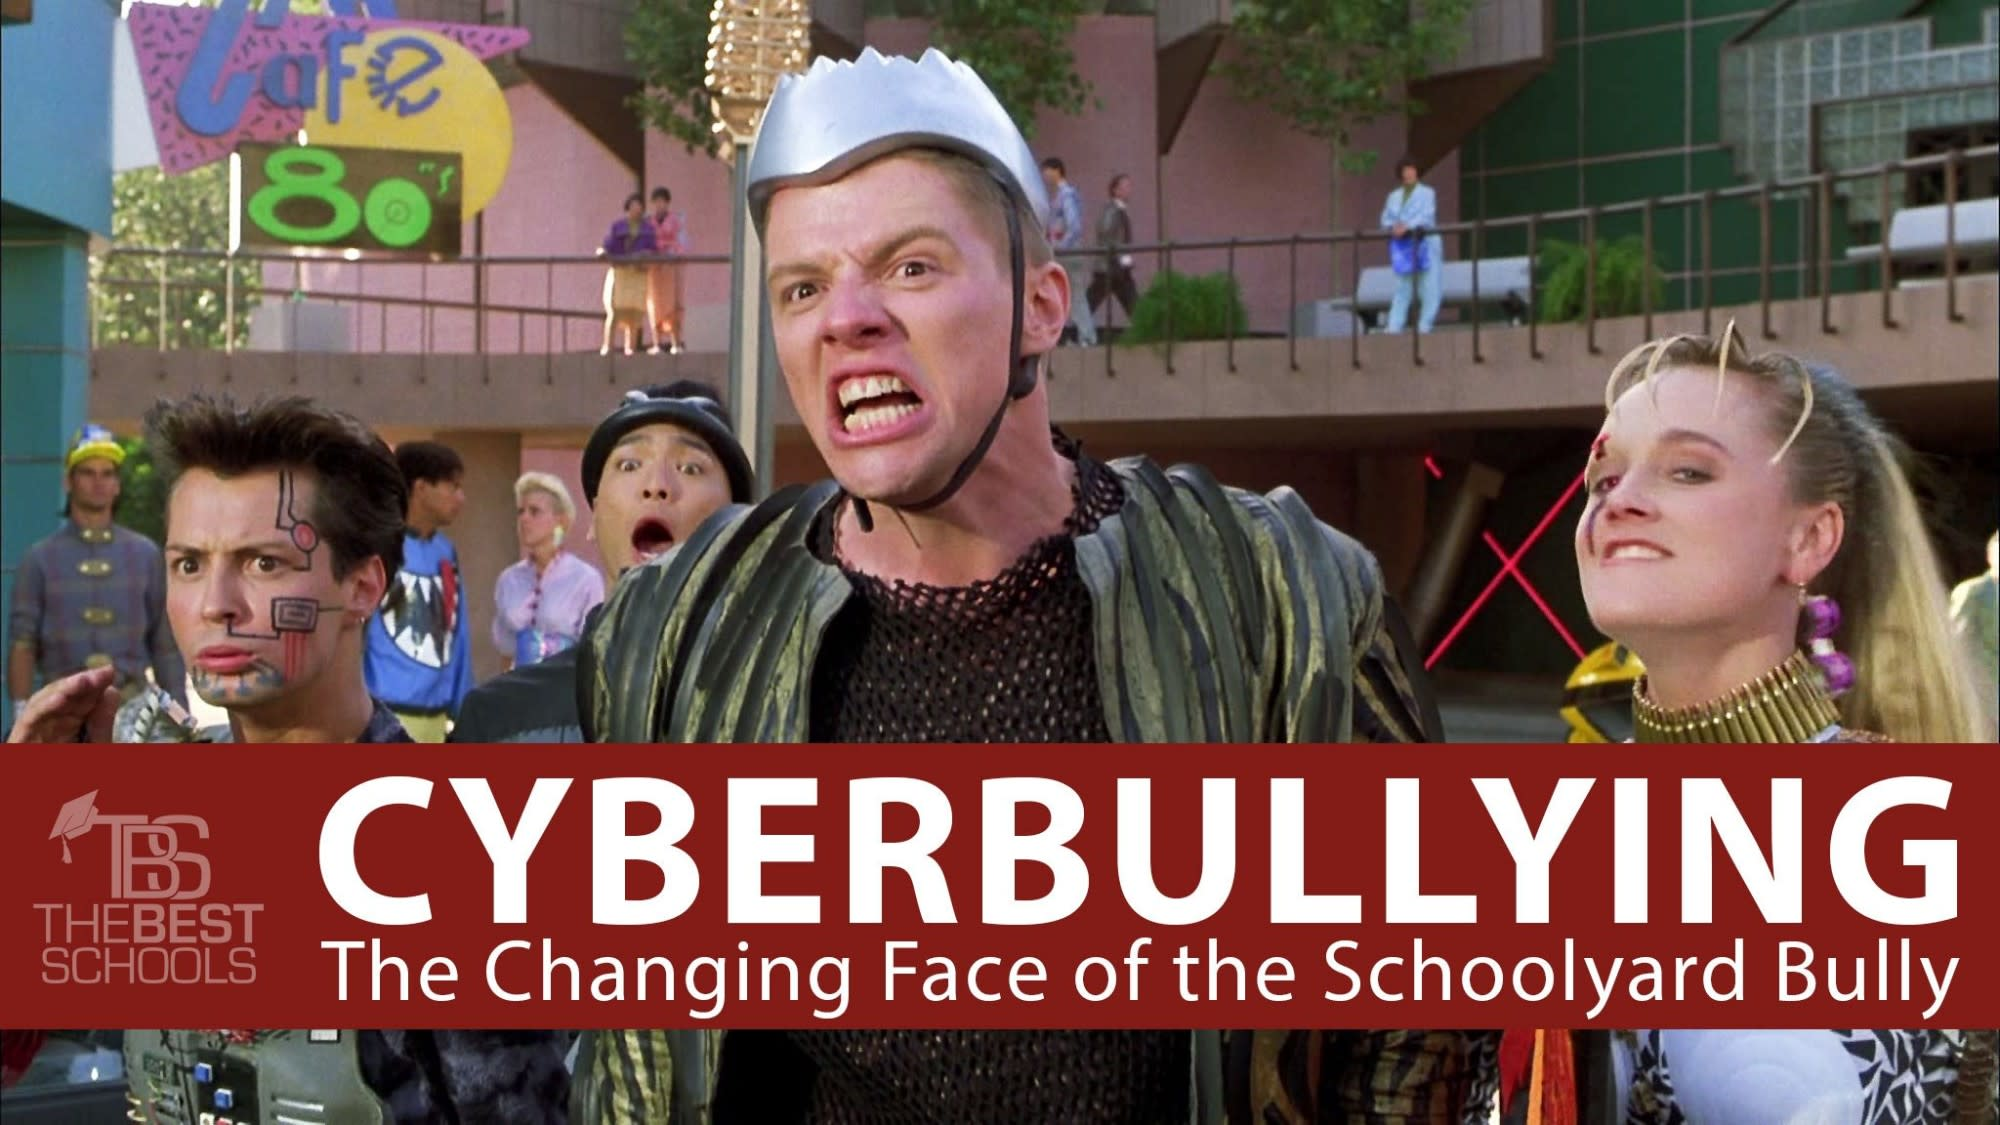 We Must Recognize Bullying As Broad >> Cyberbullying The Changing Face Of The Schoolyard Bully The Quad